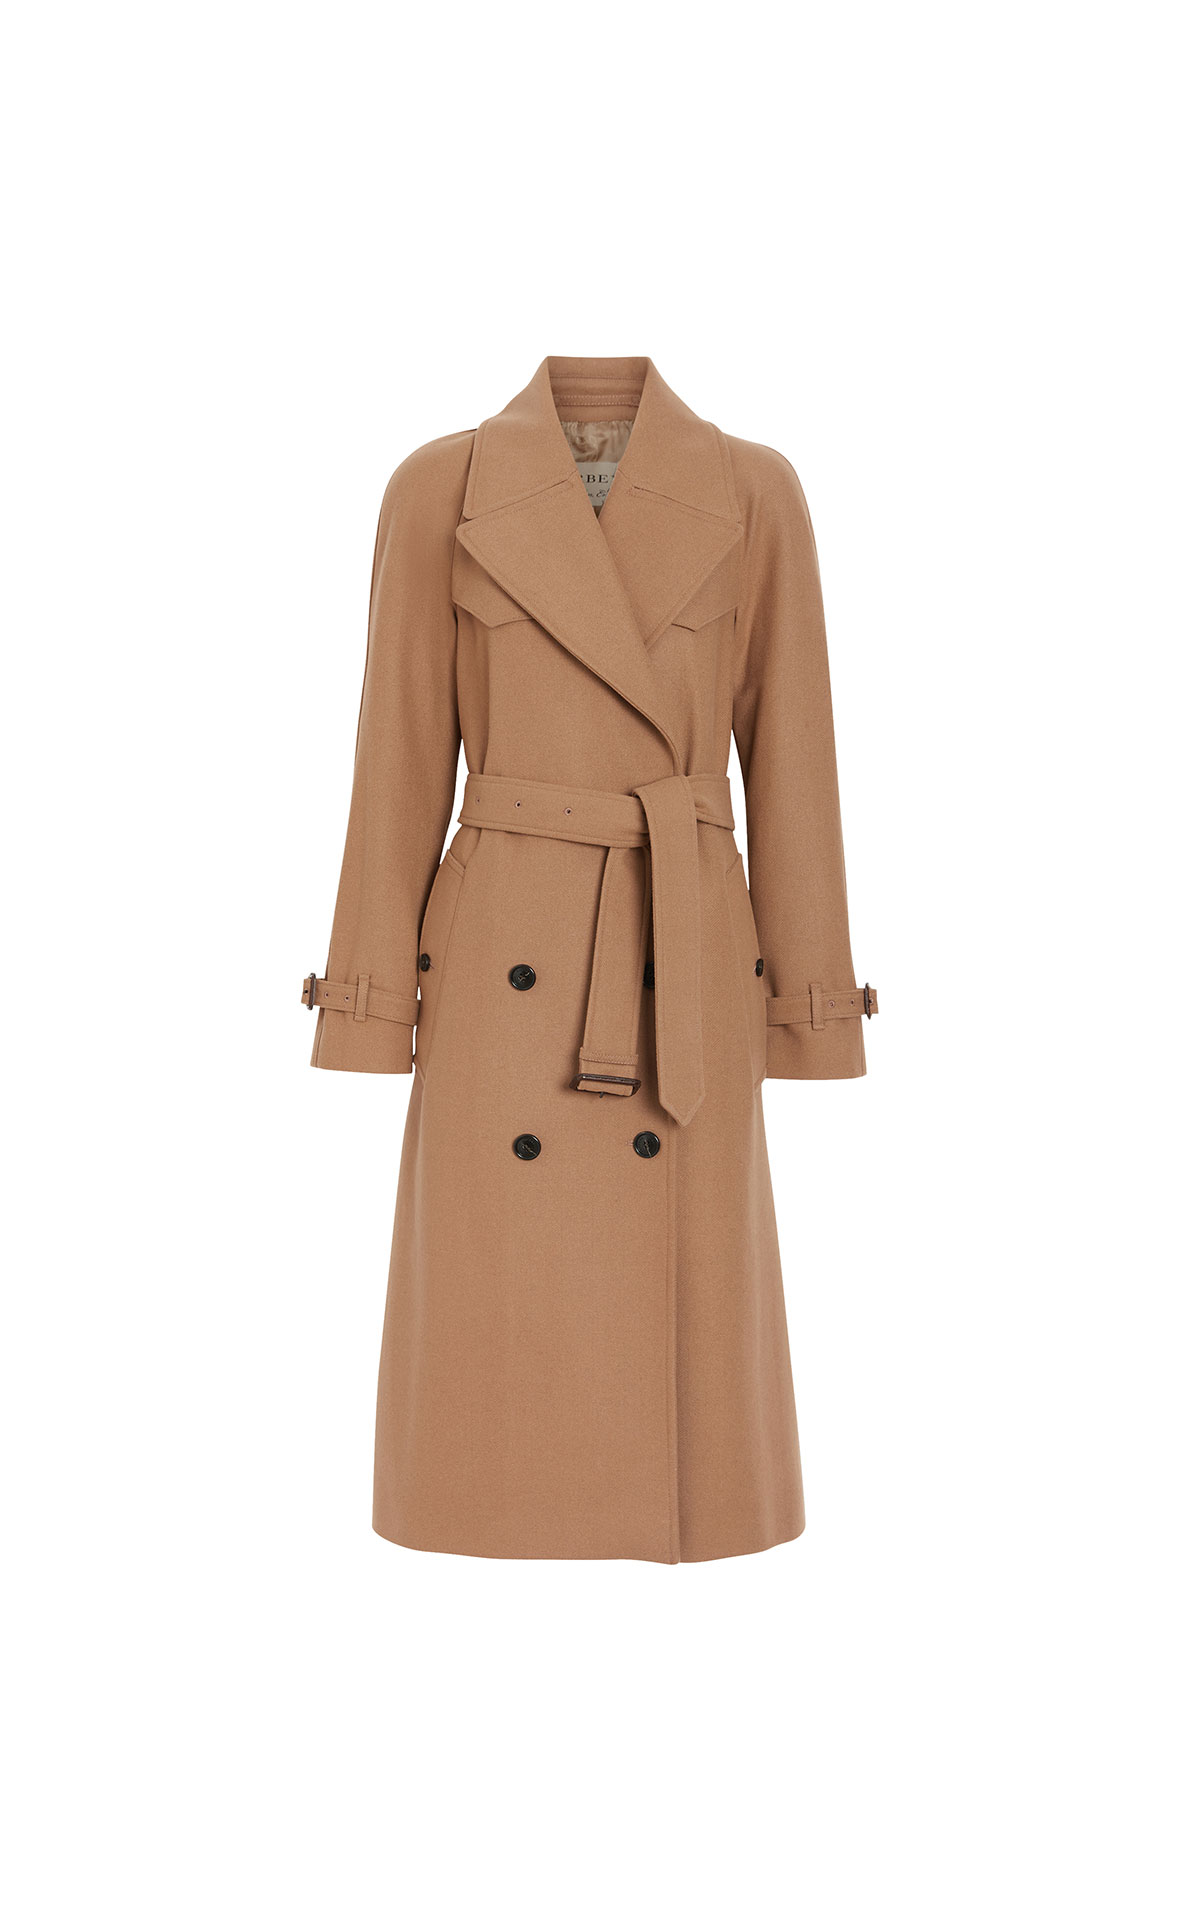 Burberry Cranston double breasted wool coat from Bicester Village